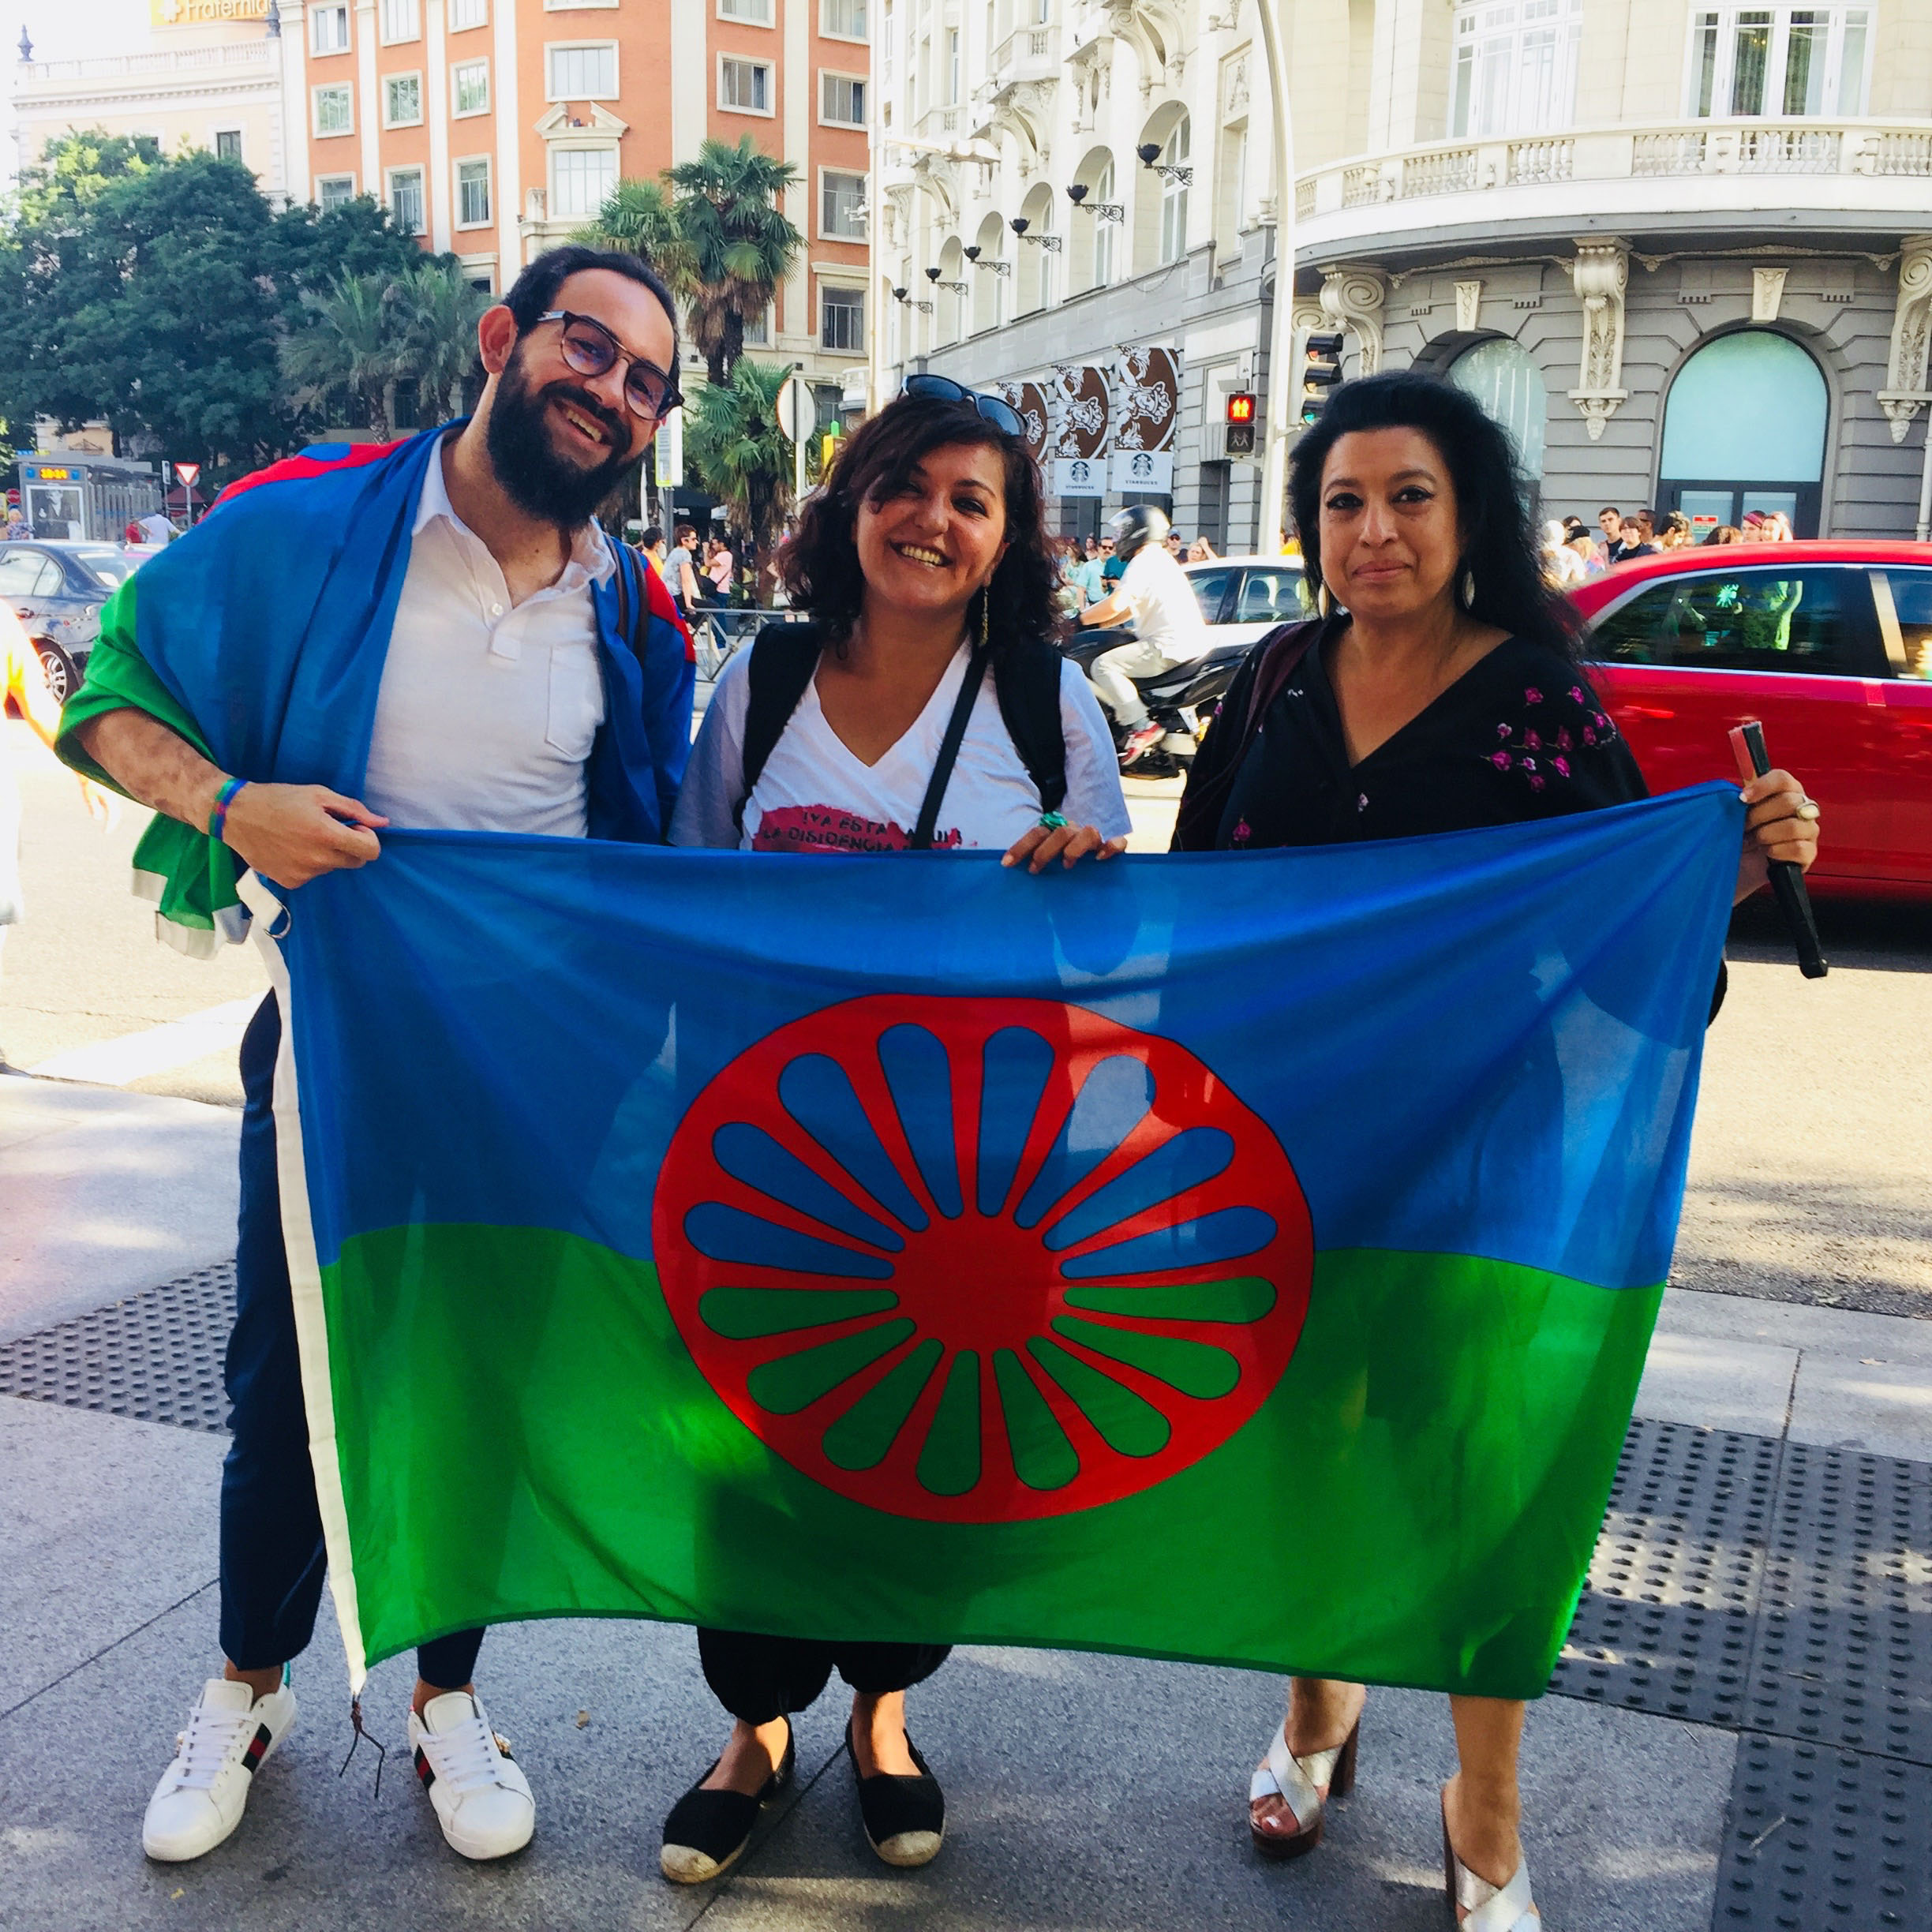 (L-R) Fernando, Celia and Aurora from Ververipen, a Spanish gypsy collective, taking part in the Critical Pride march.